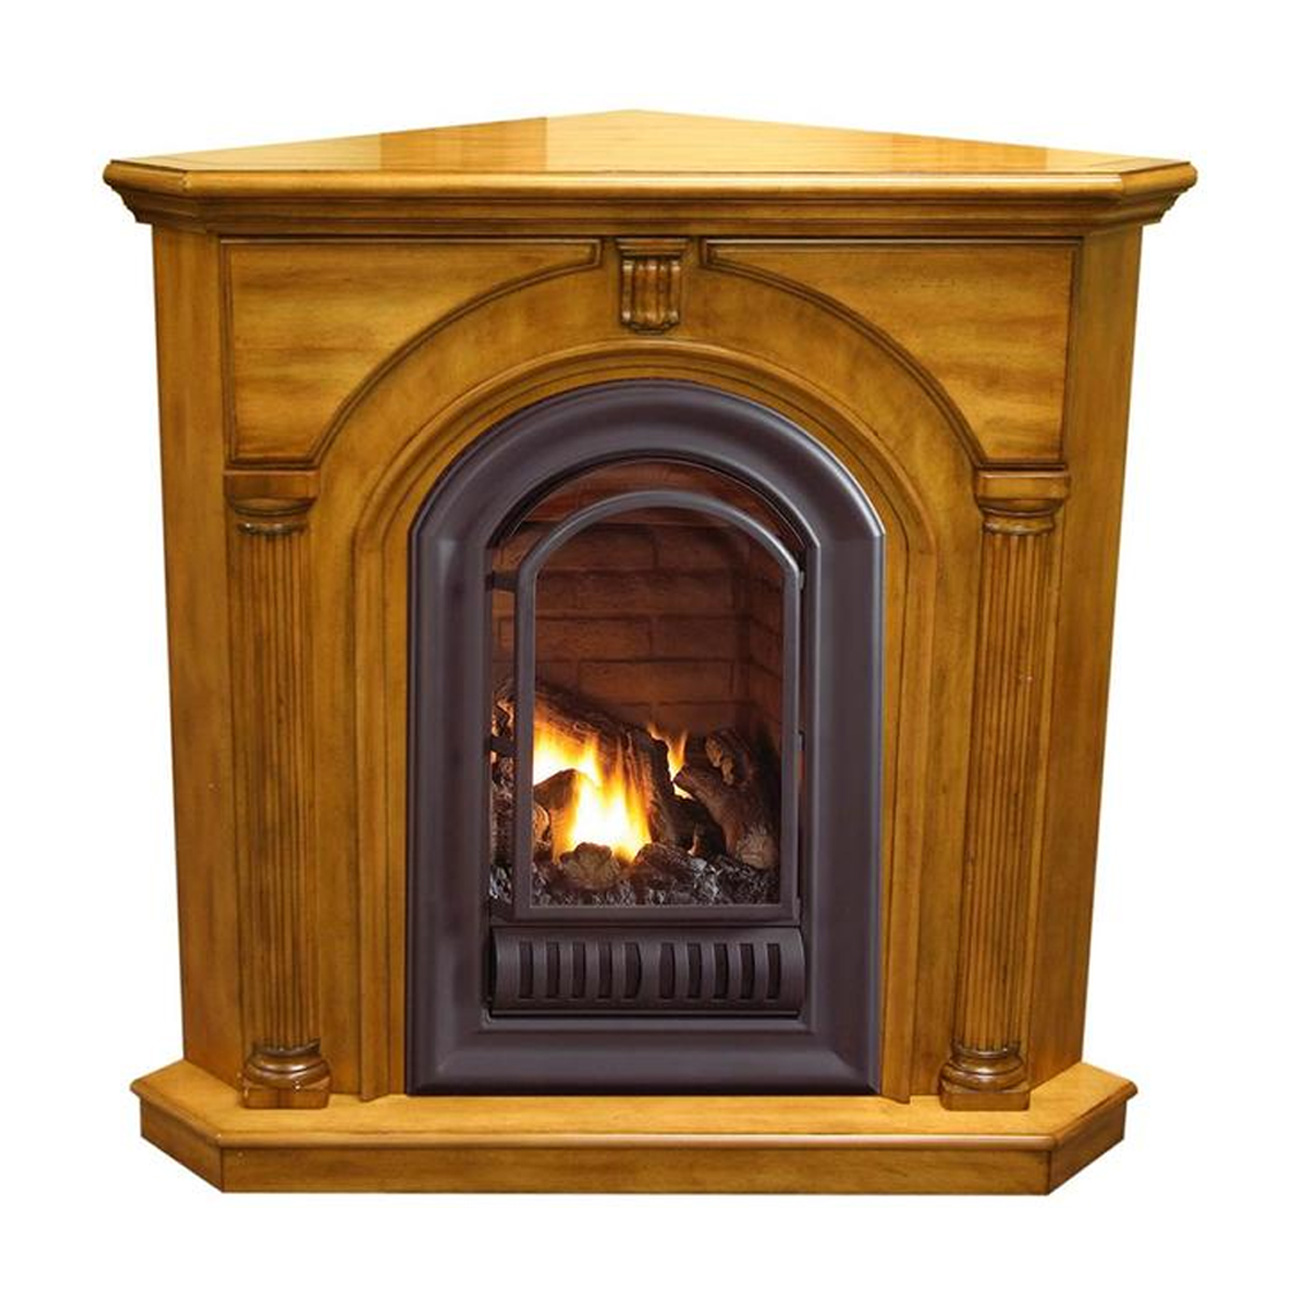 ProCom Heating Fireplace System Model AFC-LM